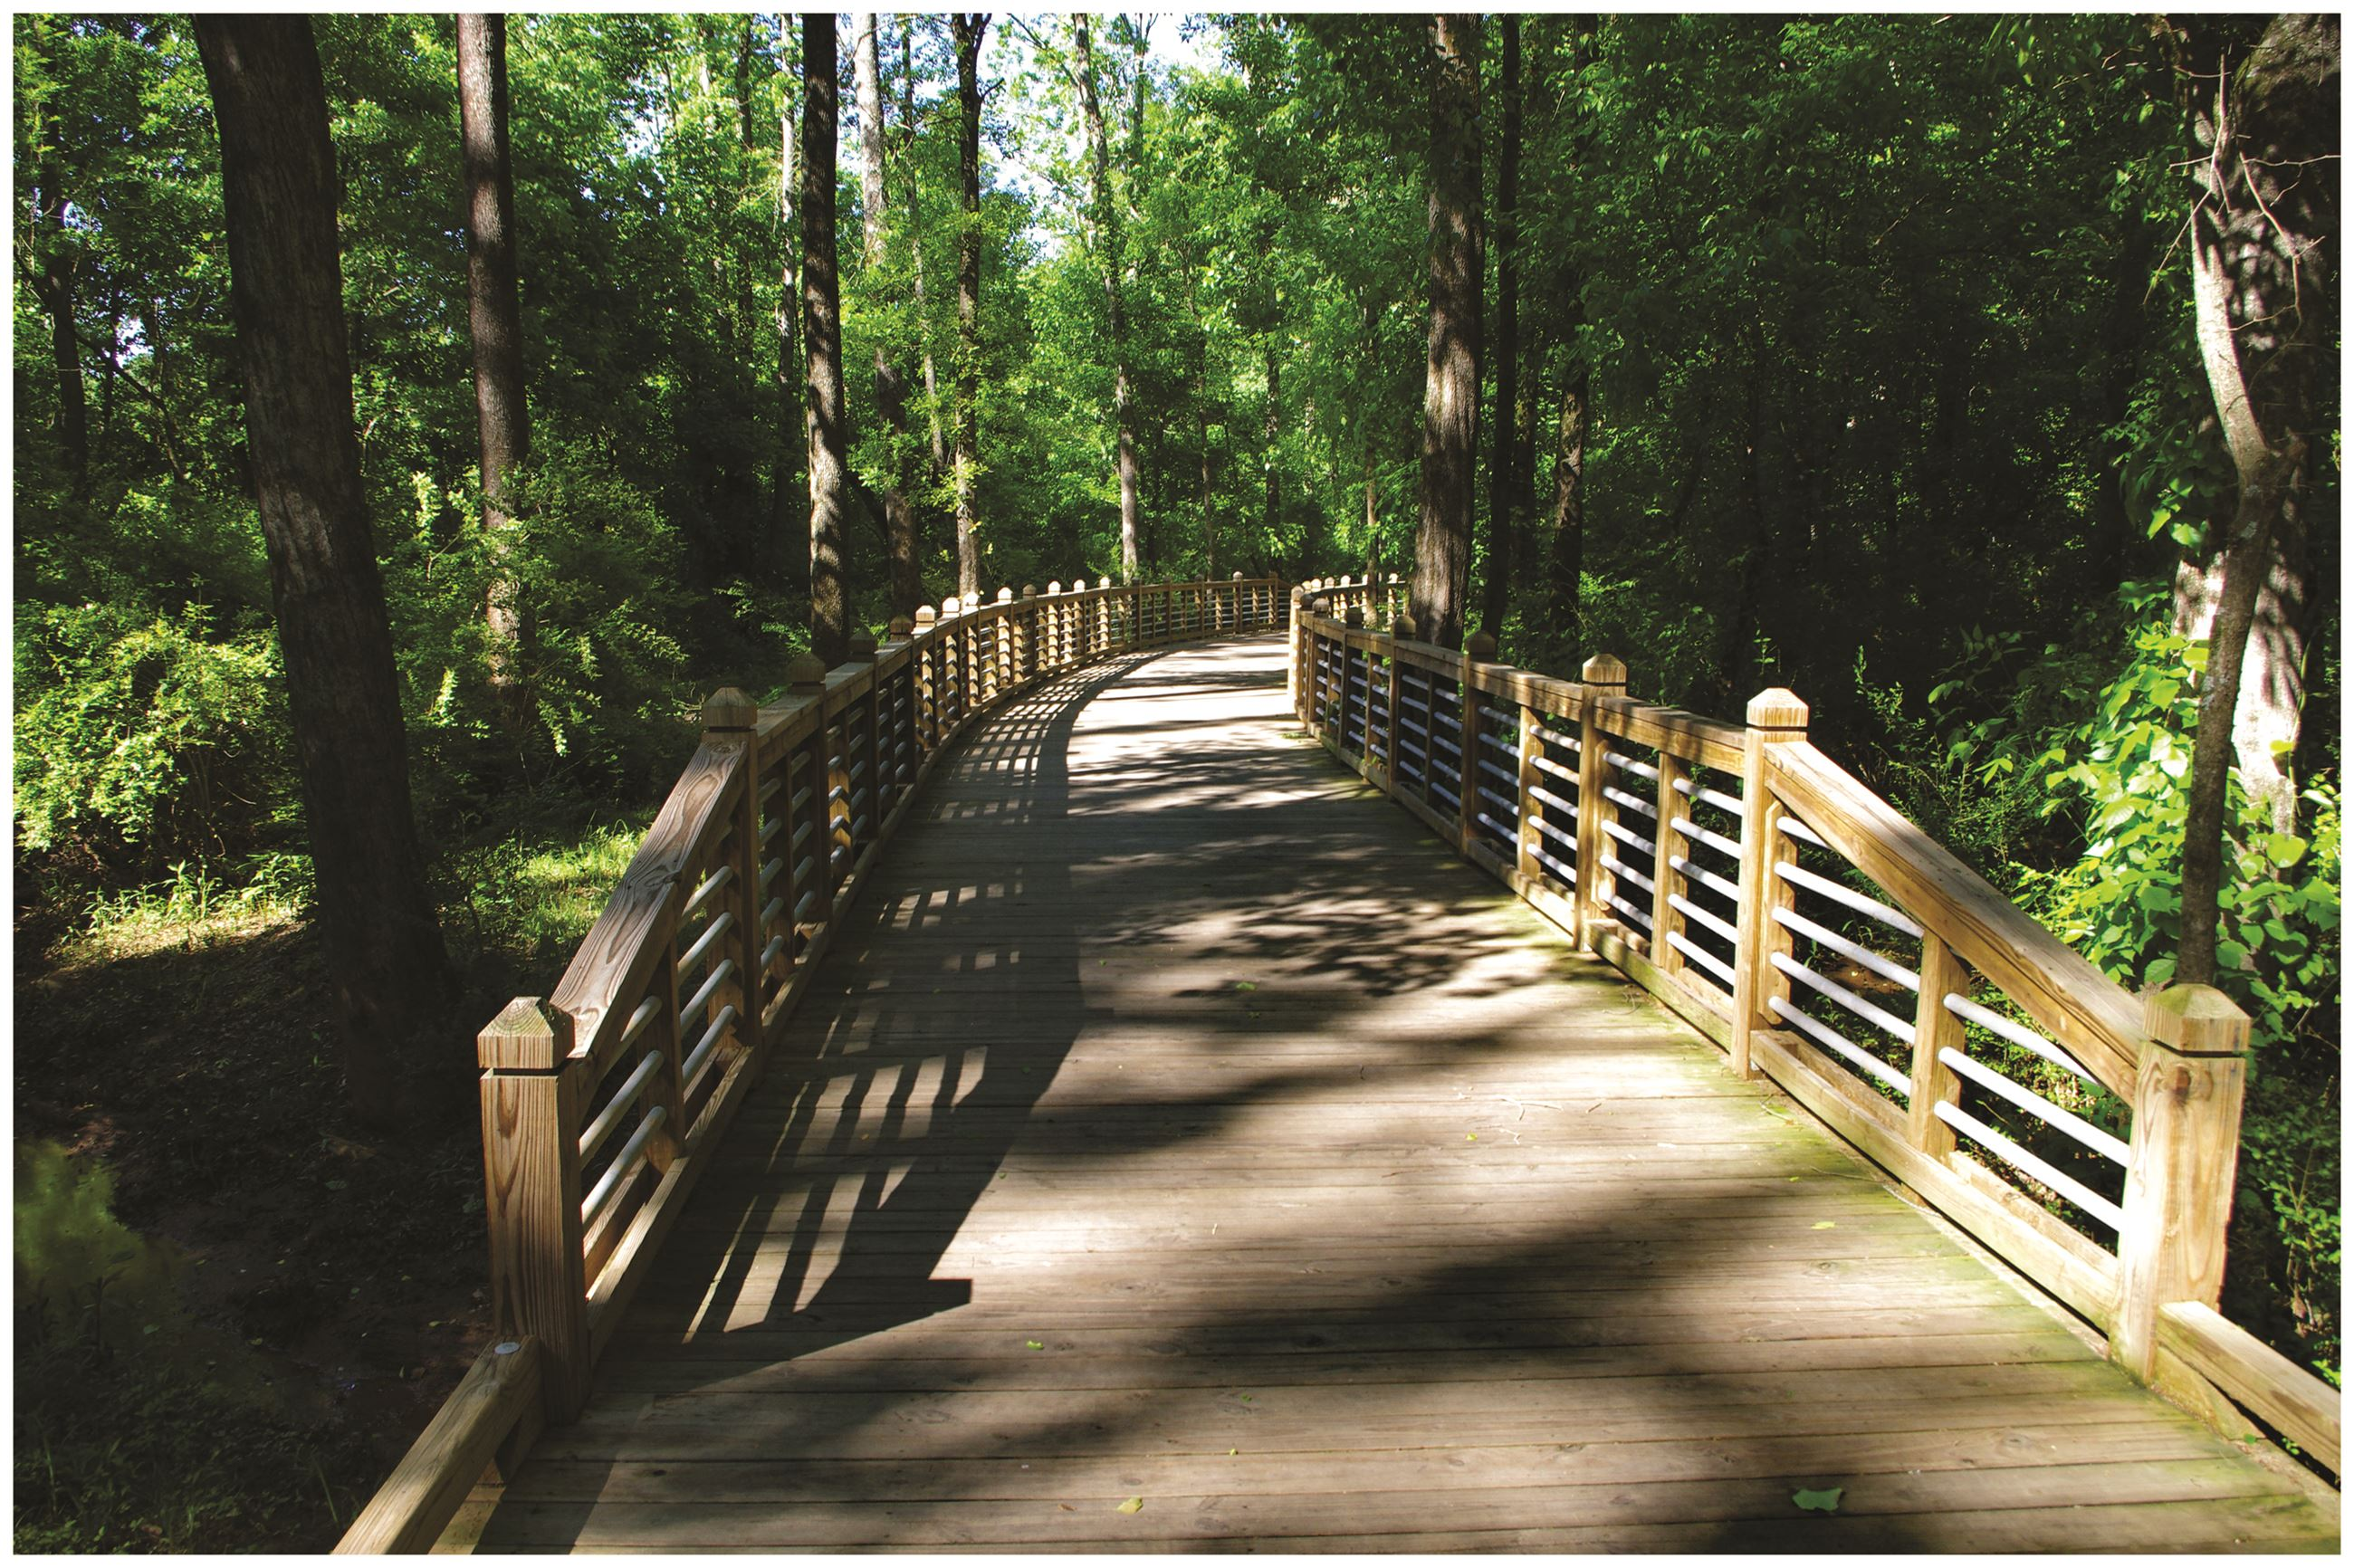 Image of Camp Creek Greenway boardwalk